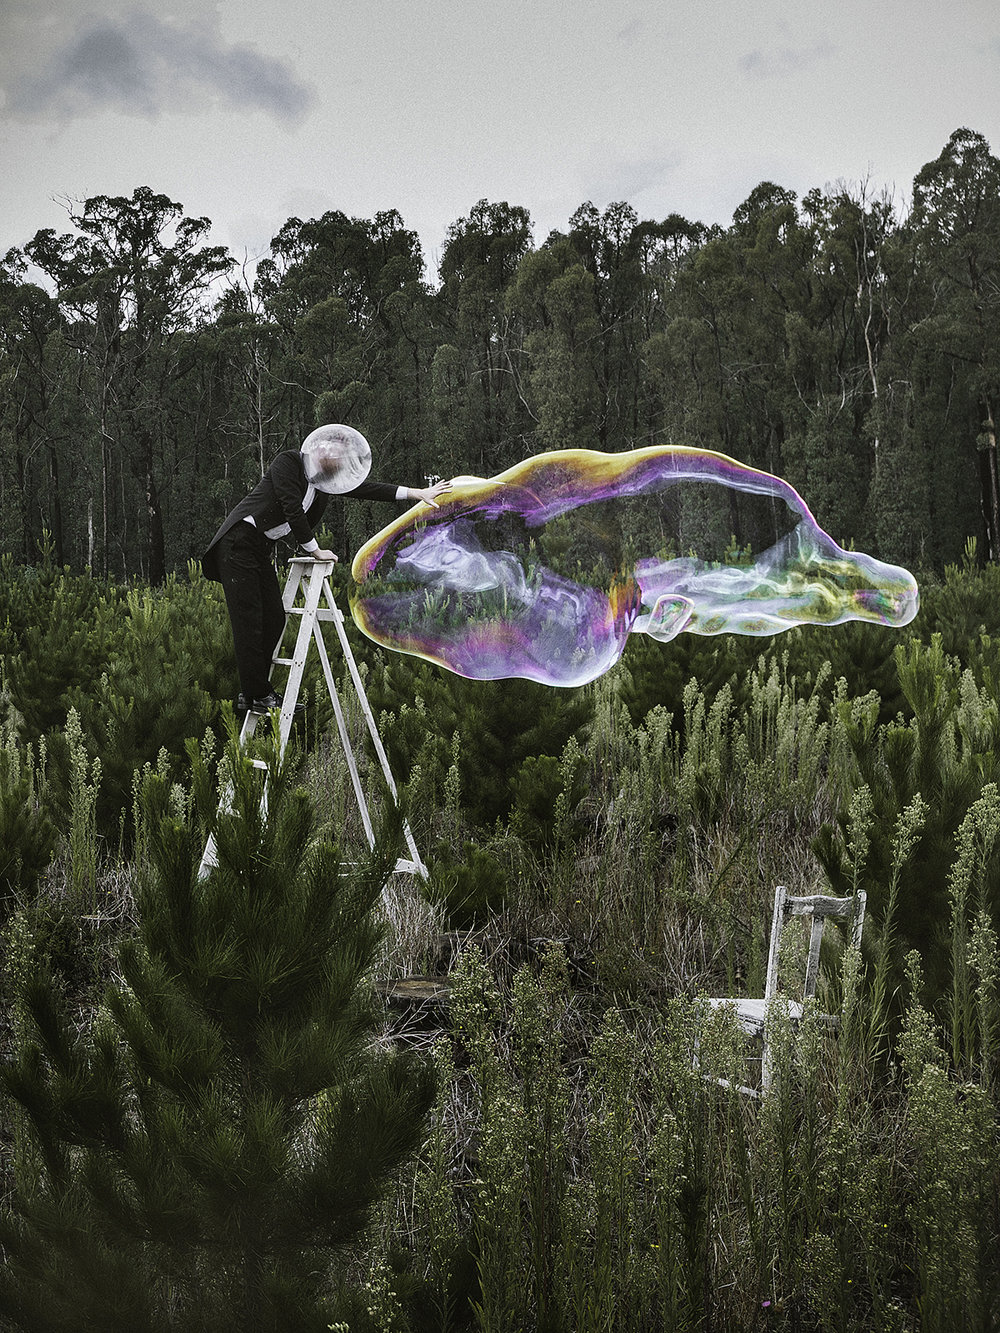 Bubbled #5, Kinglake, 2012